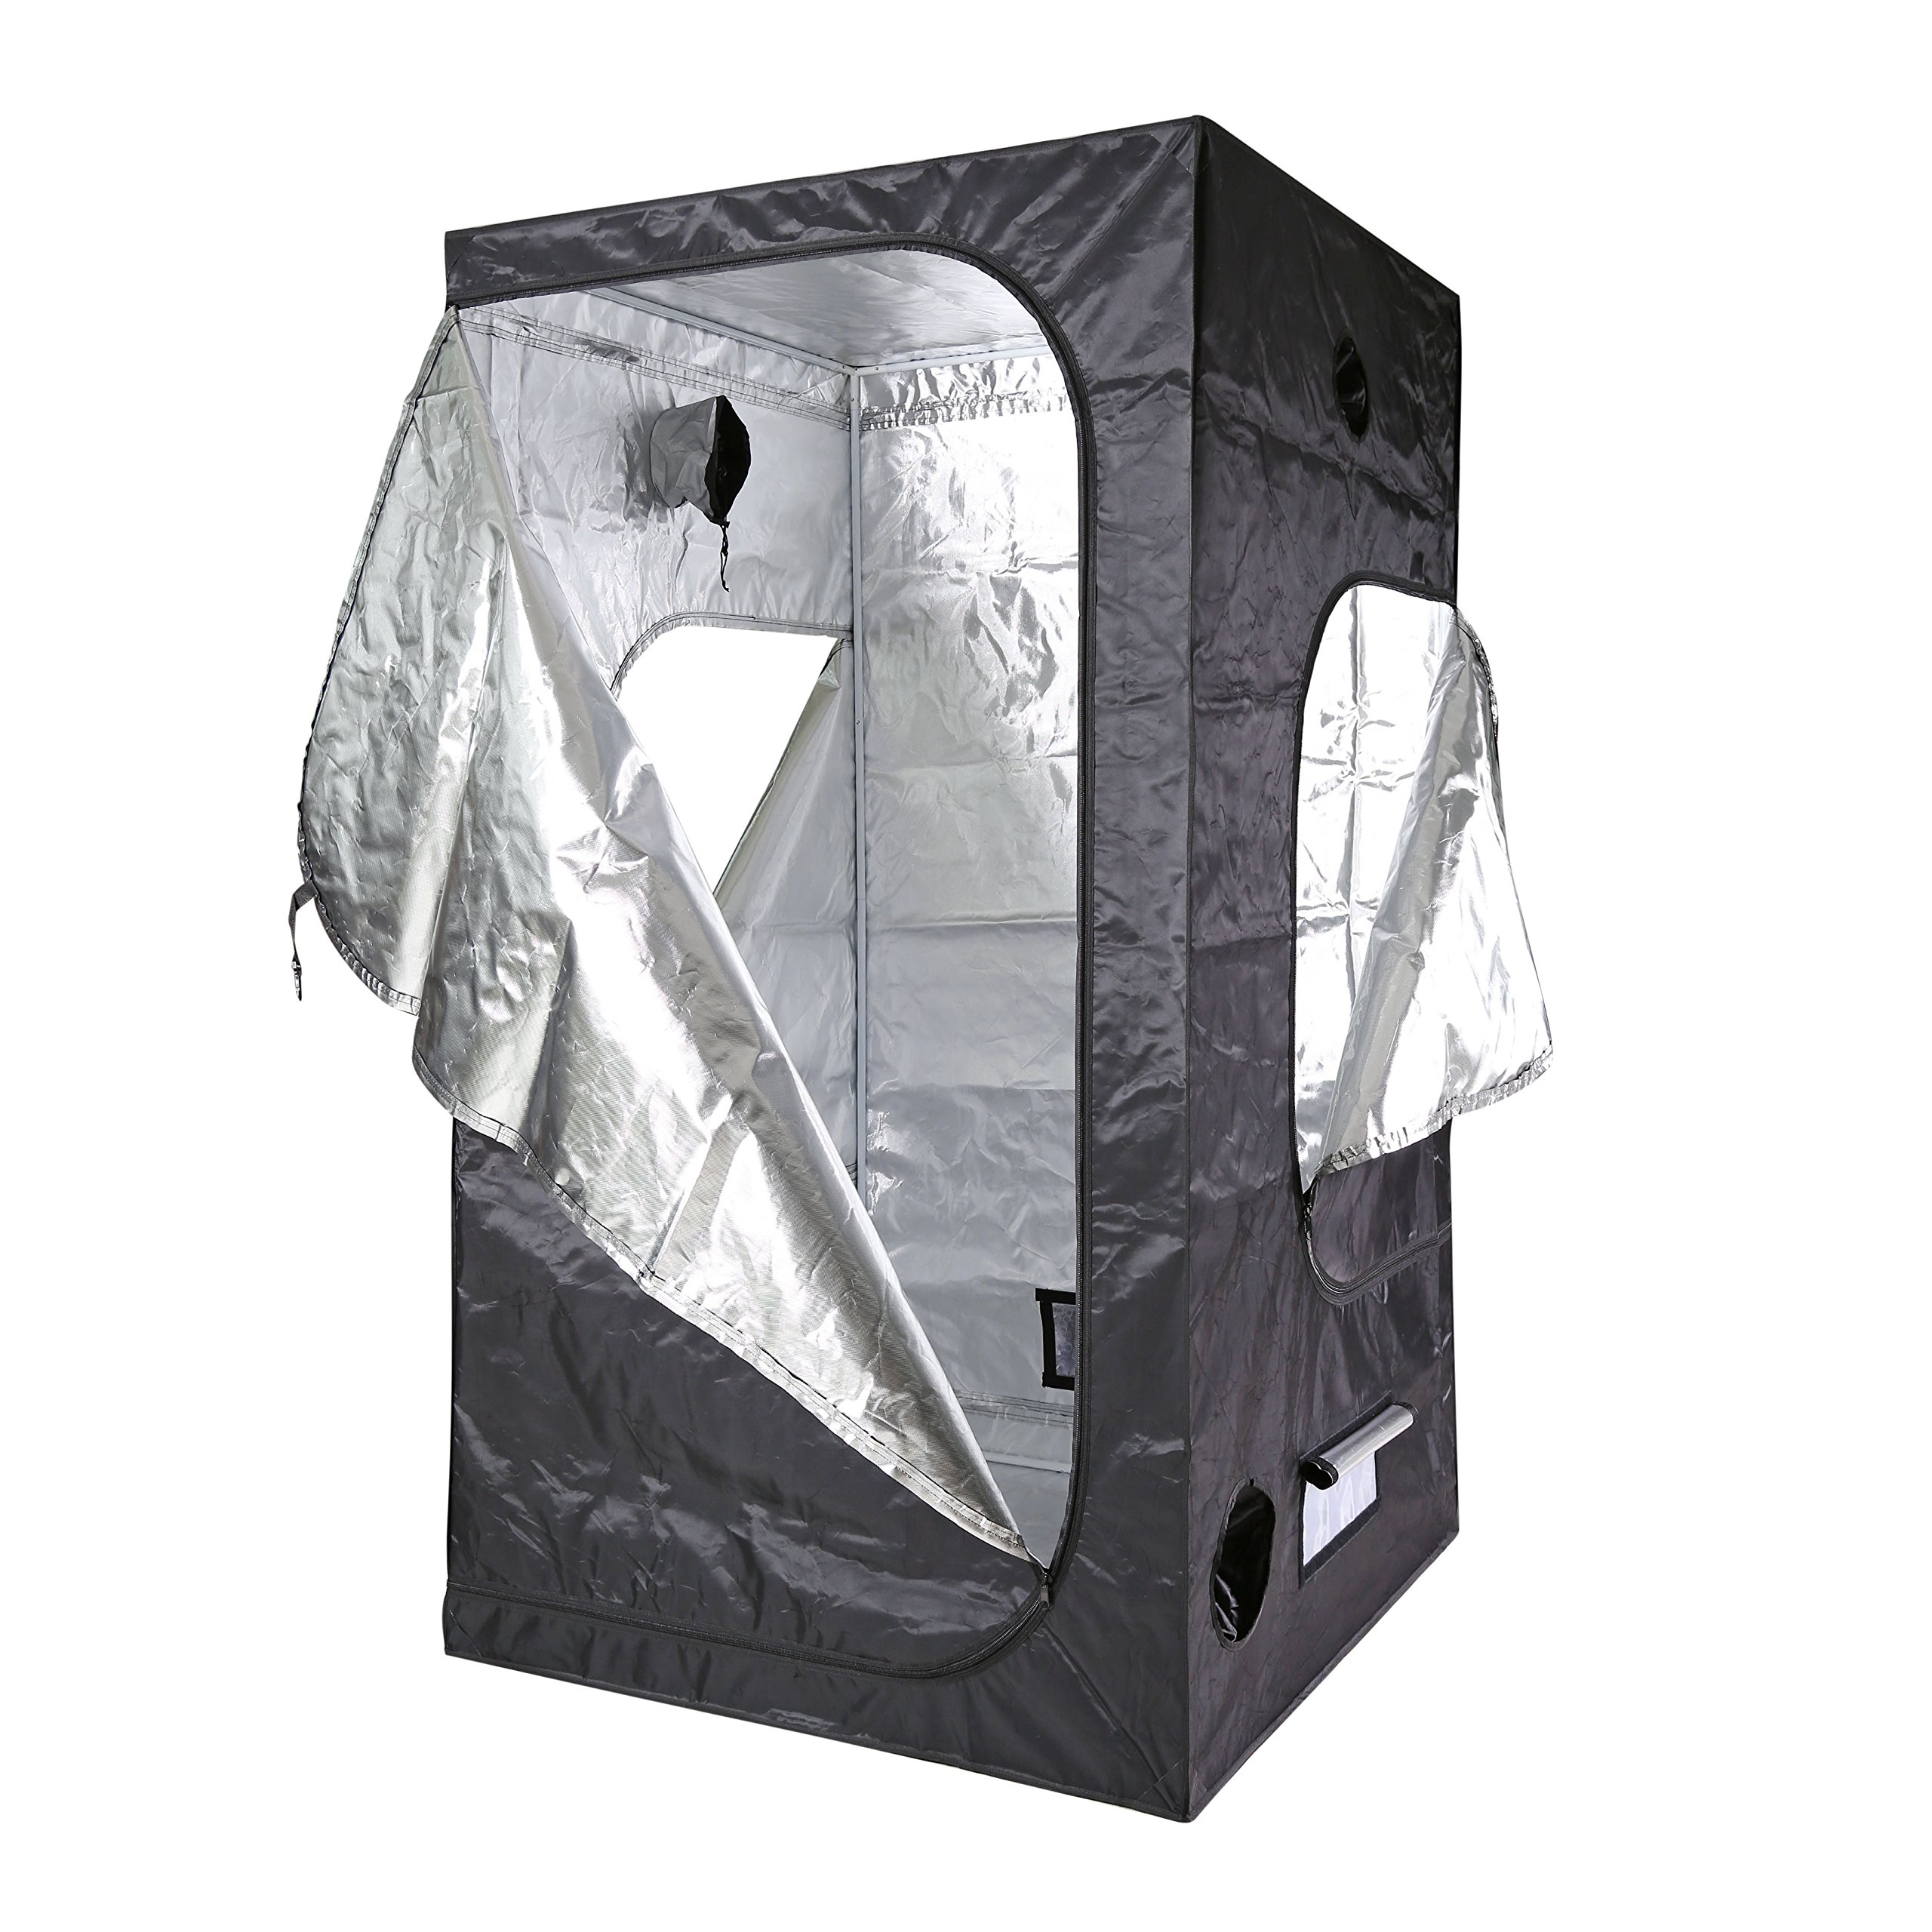 100% Mylar 600D reflective Non Toxic Grow Tent With 3 doors For Indoor (48''X48''X84'')